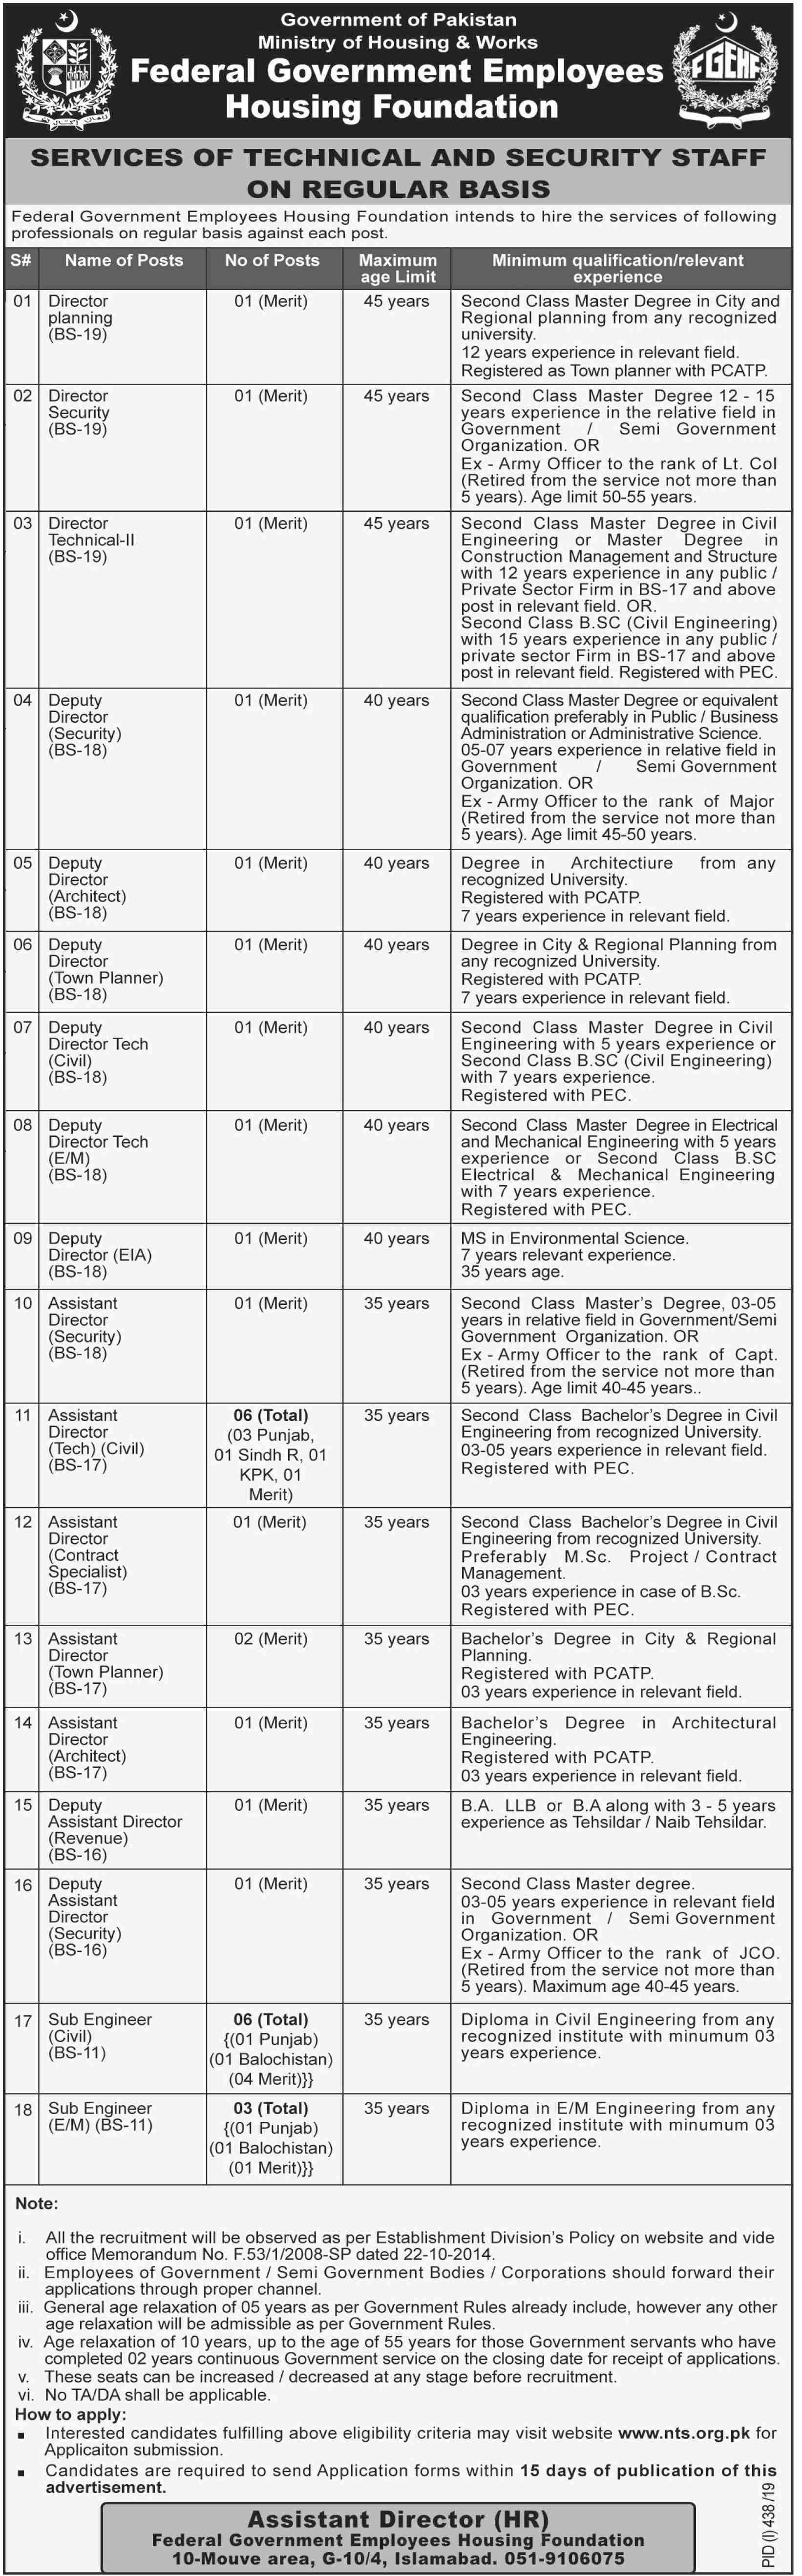 Federal Government Employees Housing Foundation FGEHF Jobs Via NTS